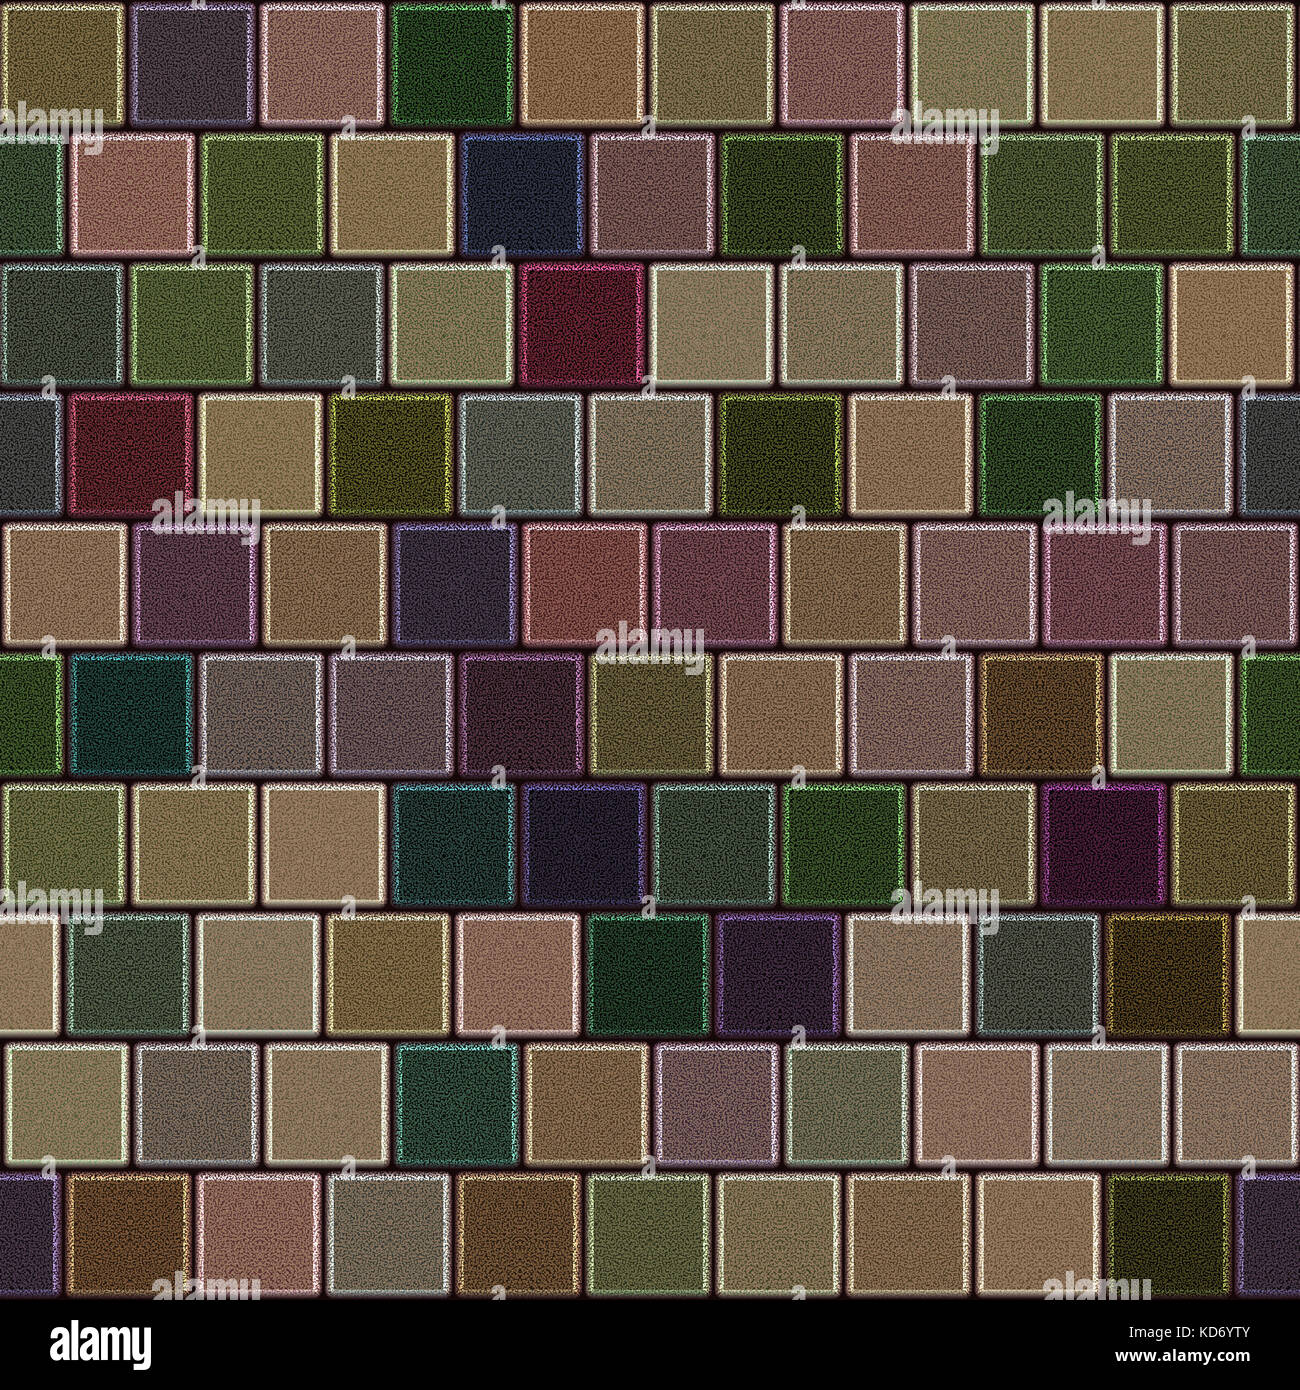 Colorful tile floor with earth colors Stock Photo, Royalty Free ...